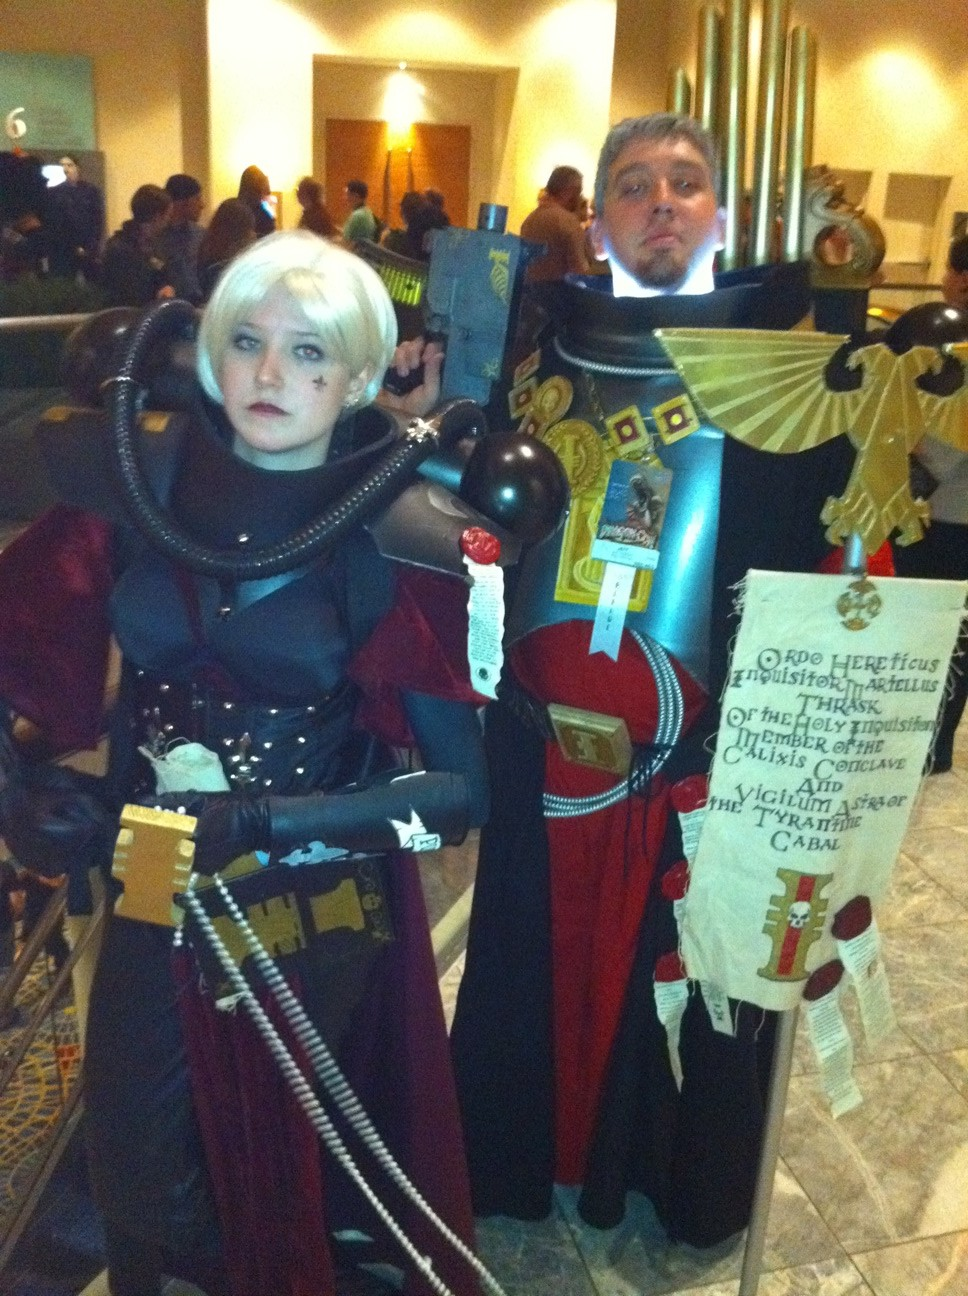 The Con Report: My First Dragoncon